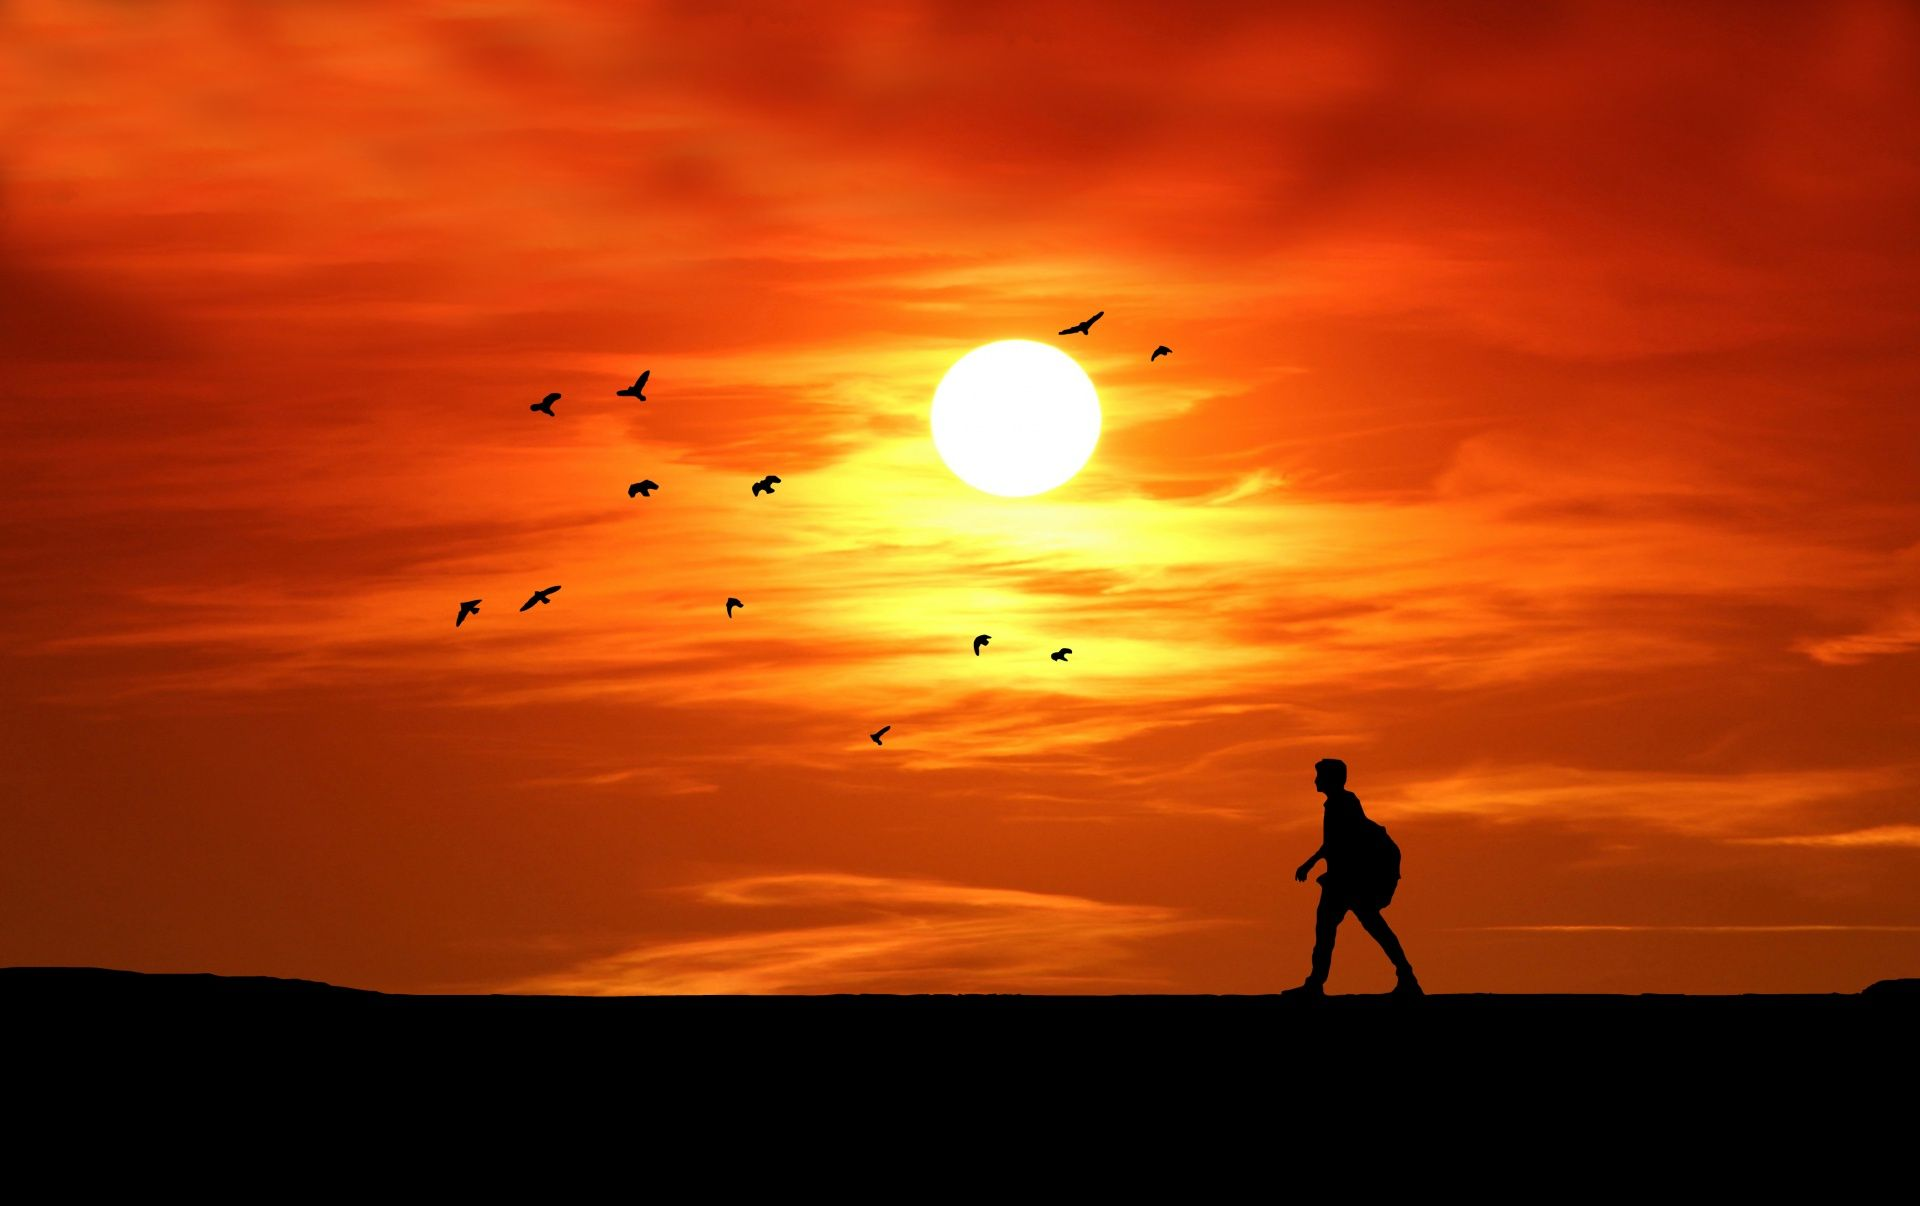 Sunset Silhouette Man Walking in 2019.